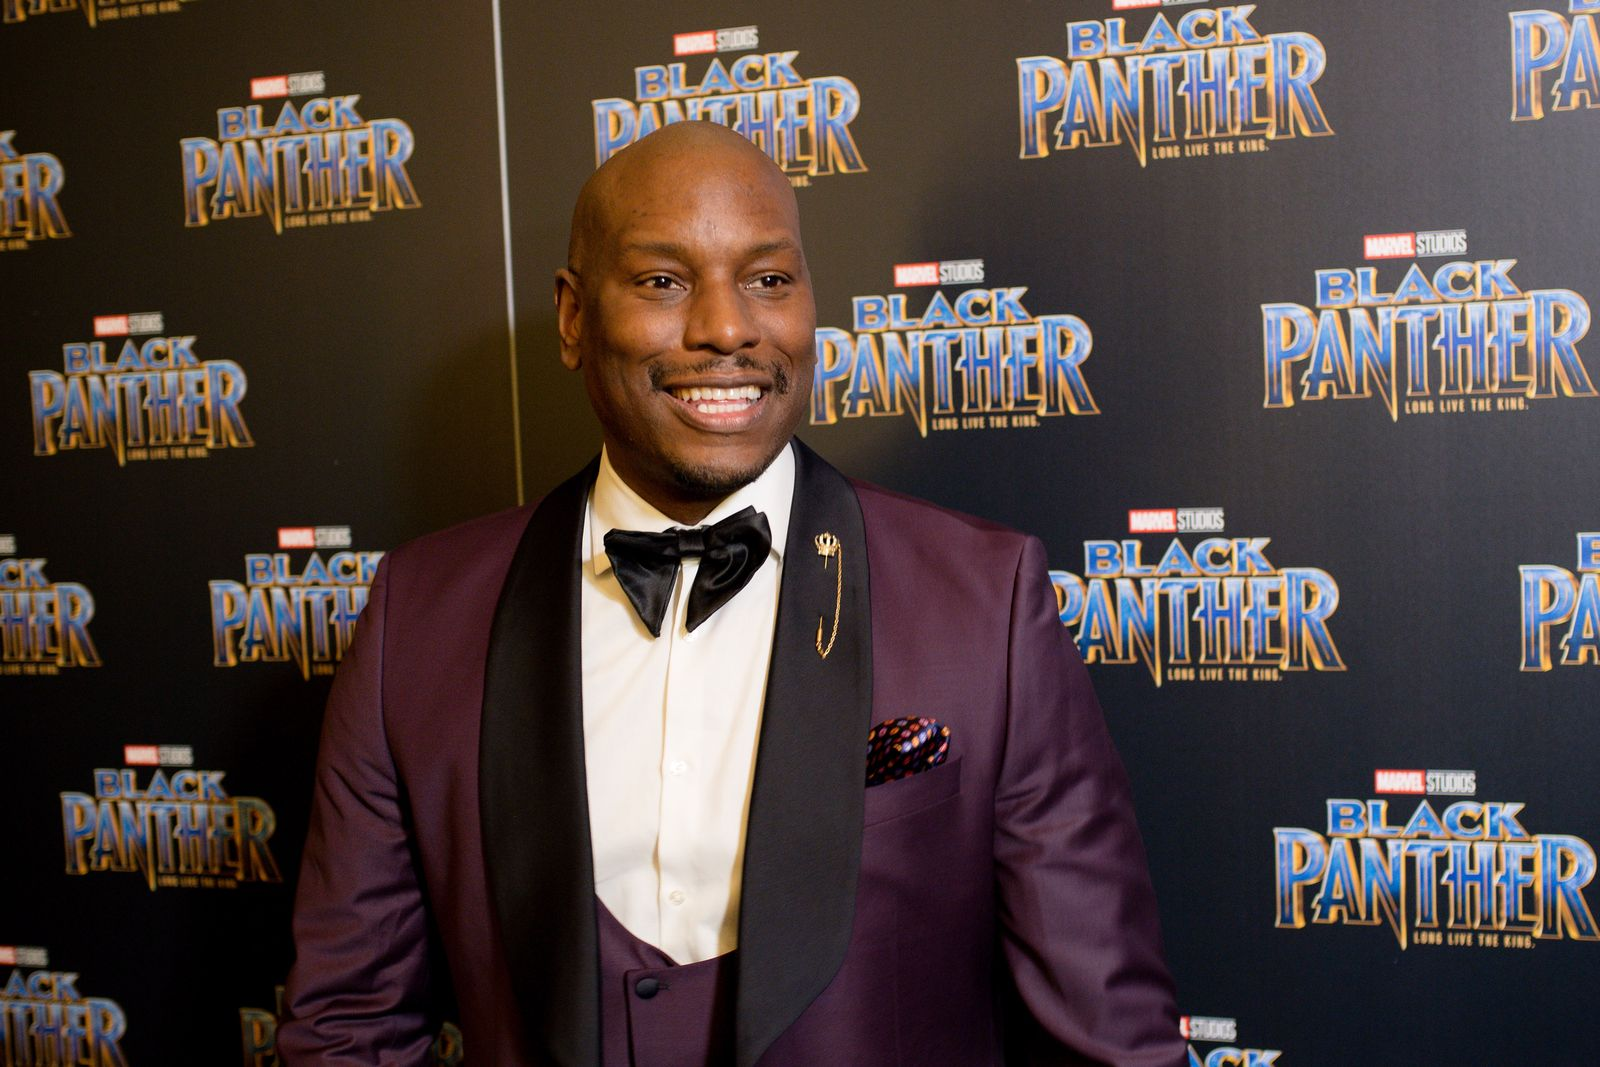 """Singer Tyrese Gibson at the Marvel Studios """"Black Panther"""" Atlanta movie screening at The Fox Theatre on February 7, 2018 